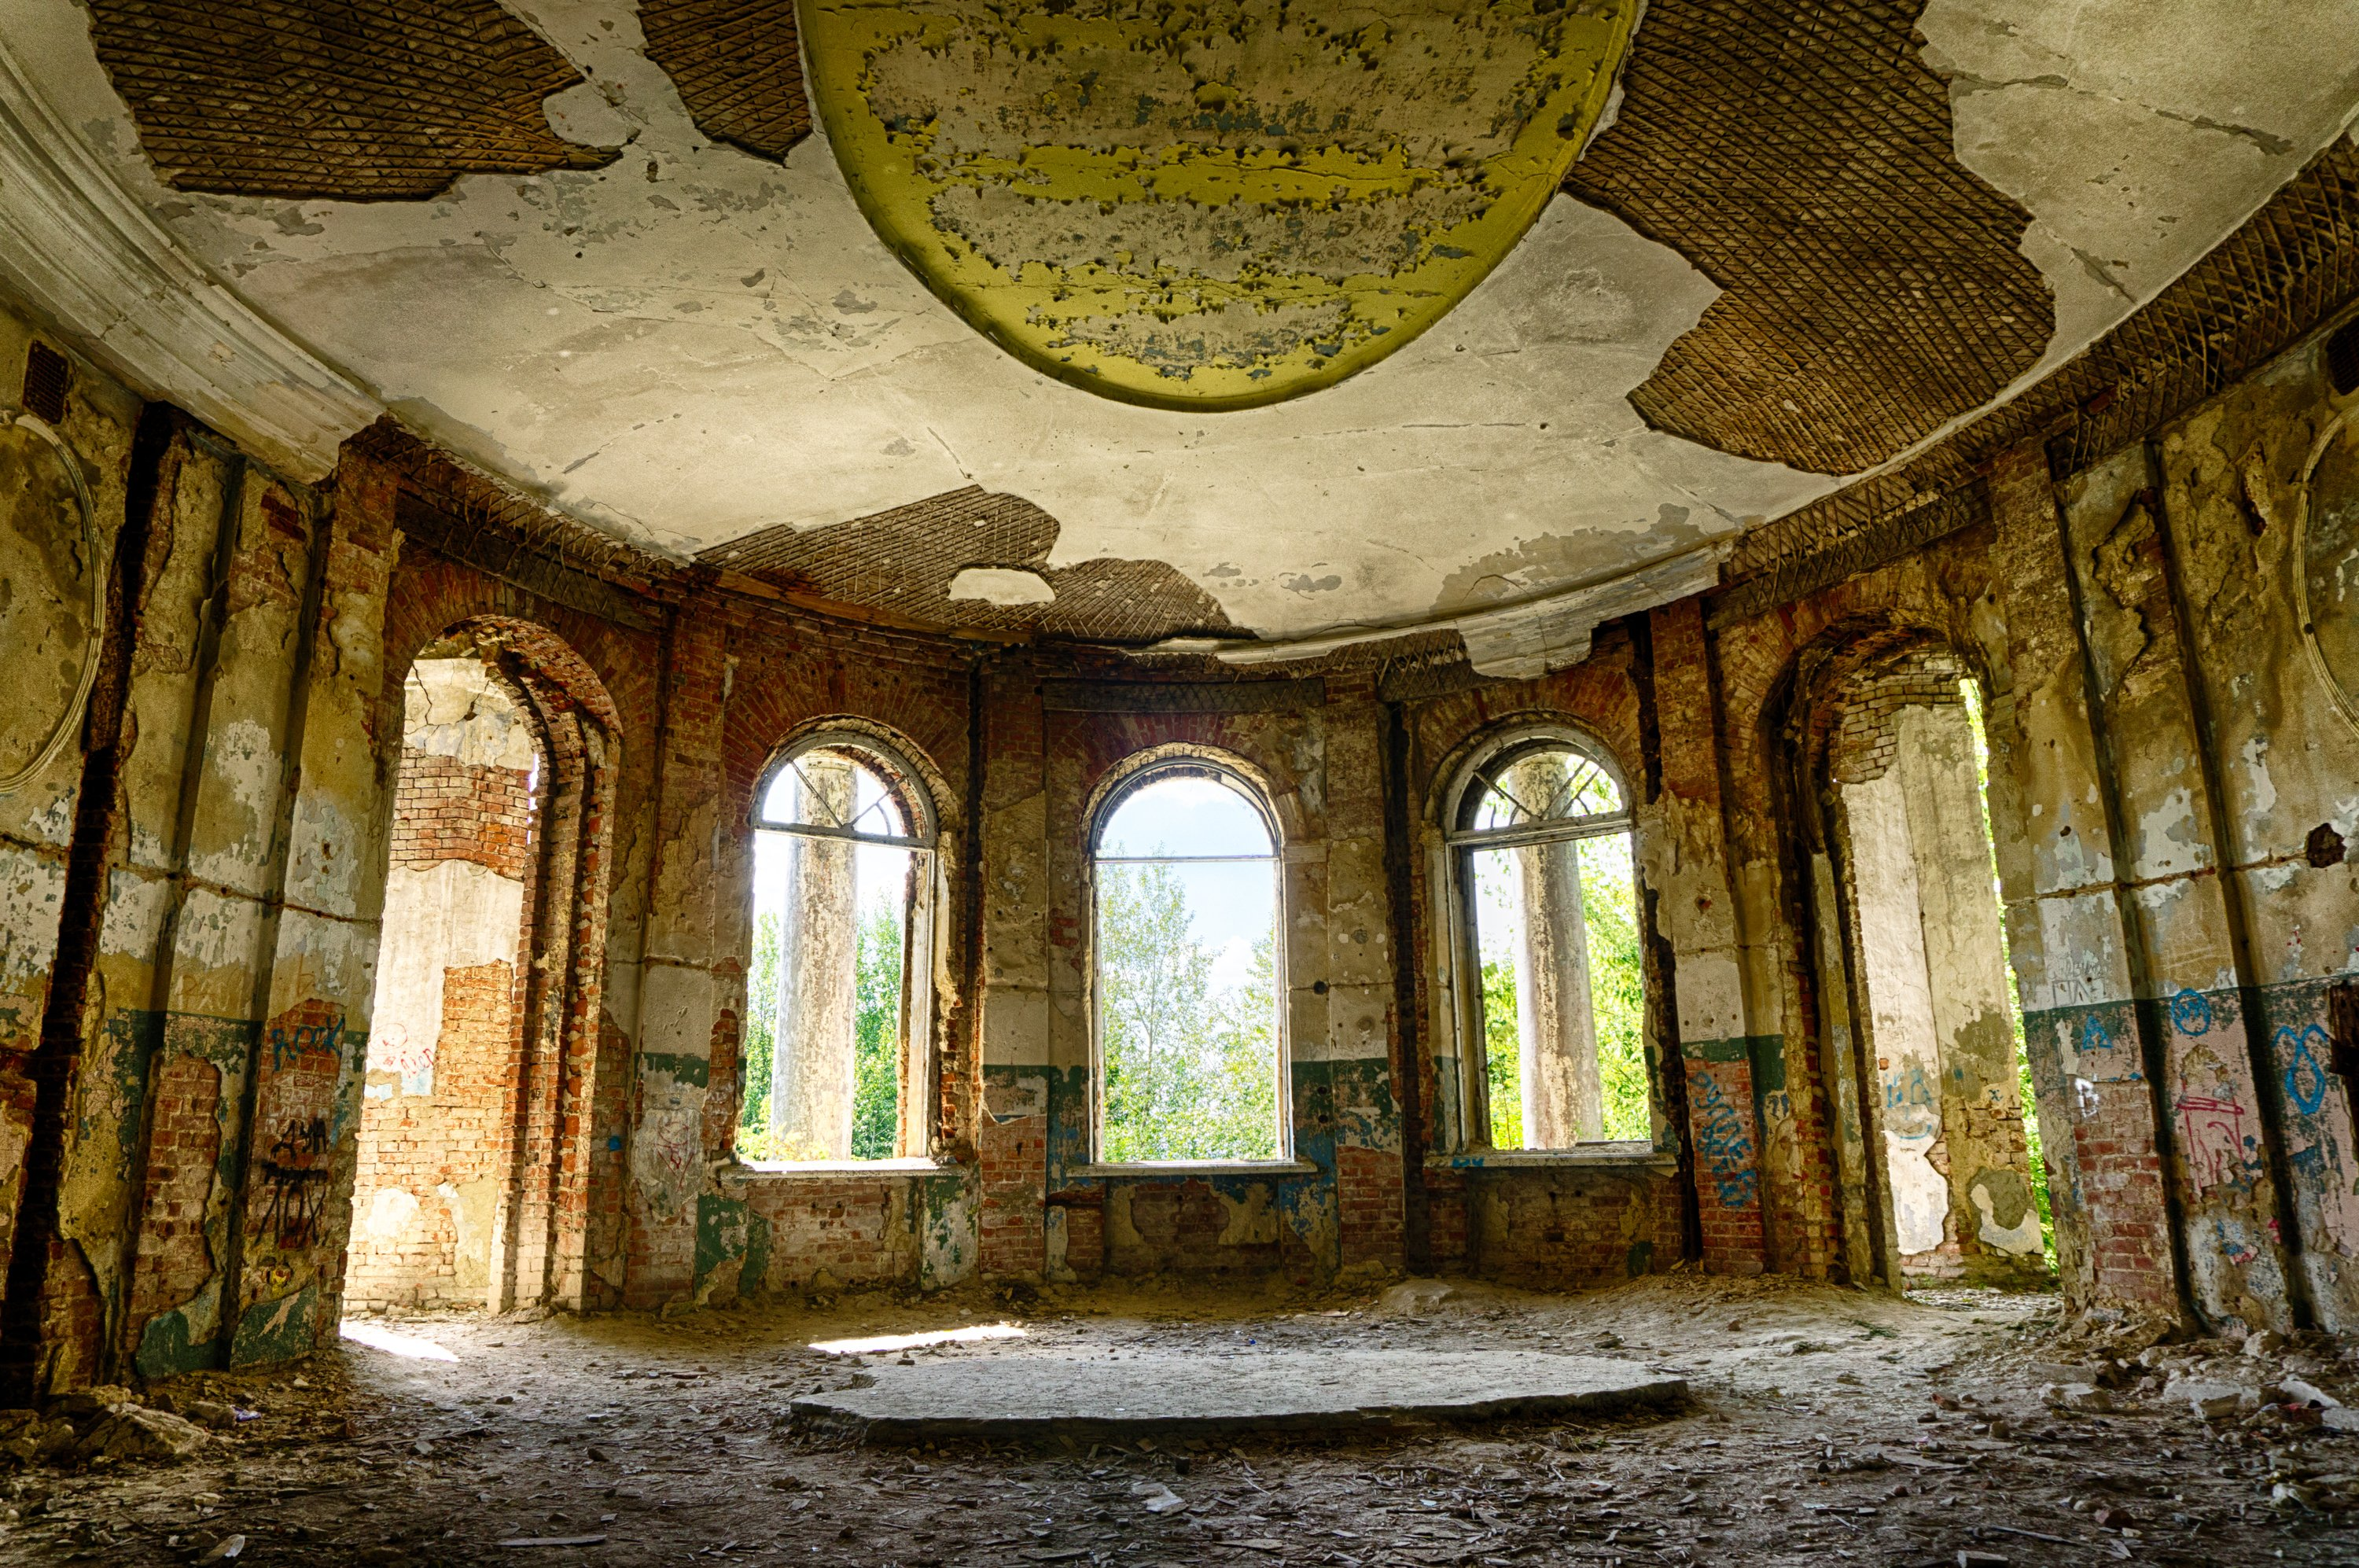 Abandoned mansion, hall, inside view | Shutterstock